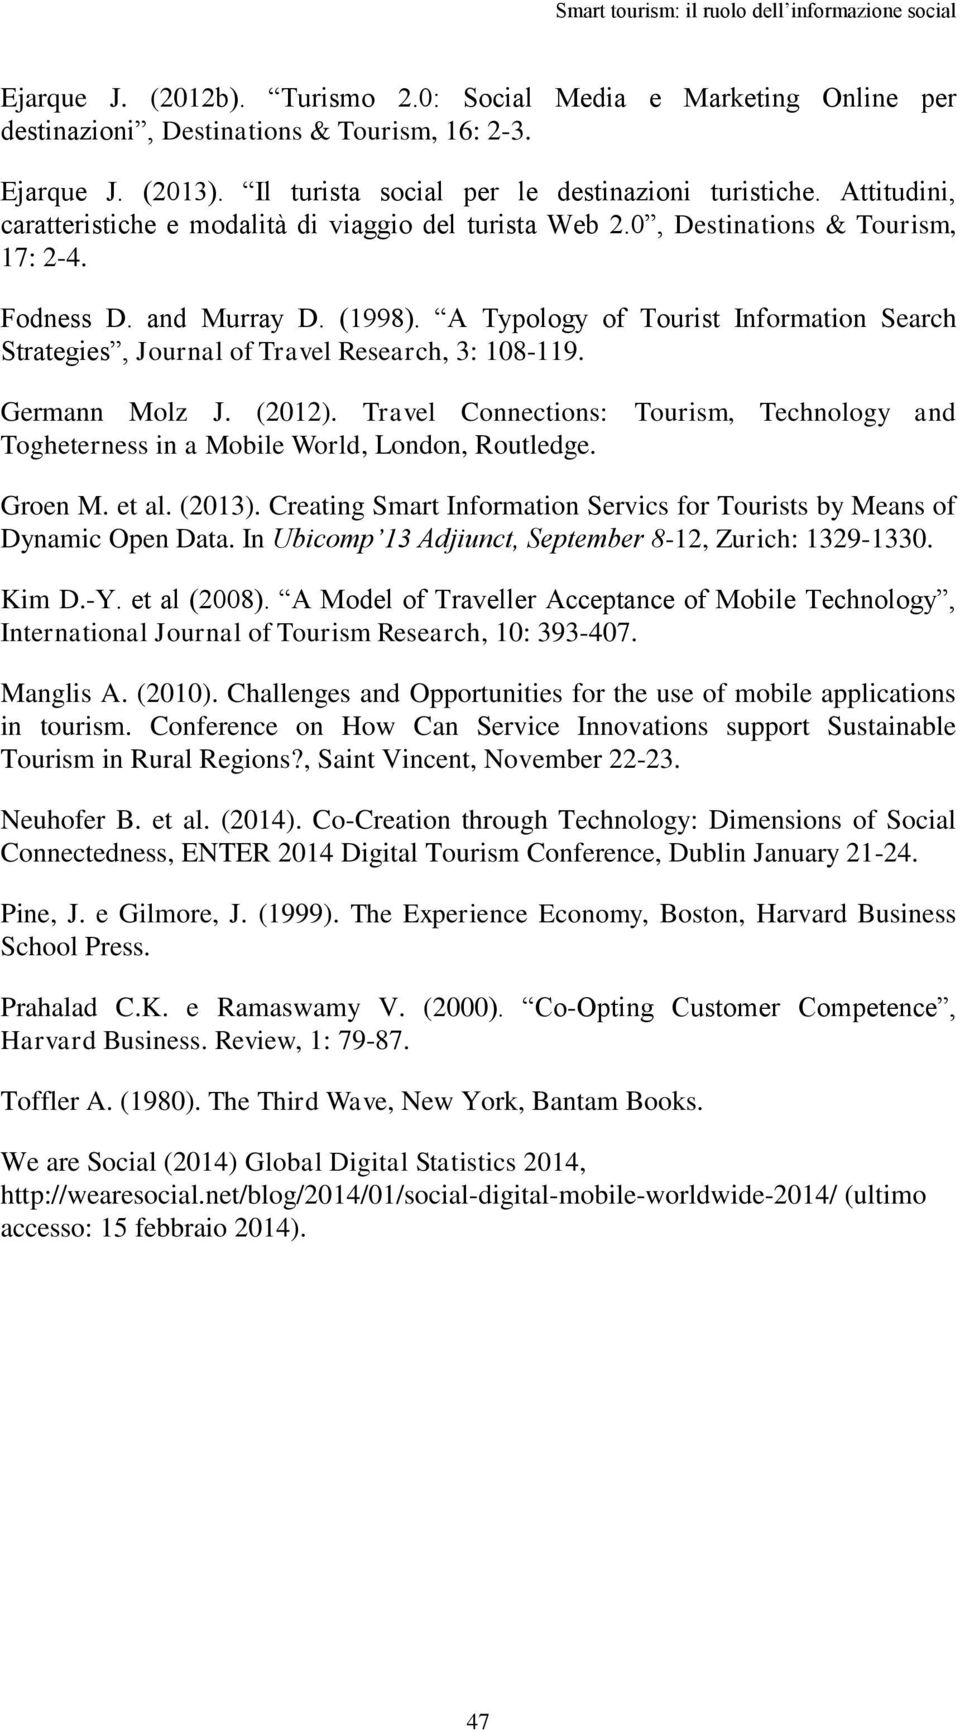 A Typology of Tourist Information Search Strategies, Journal of Travel Research, 3: 108-119. Germann Molz J. (2012).